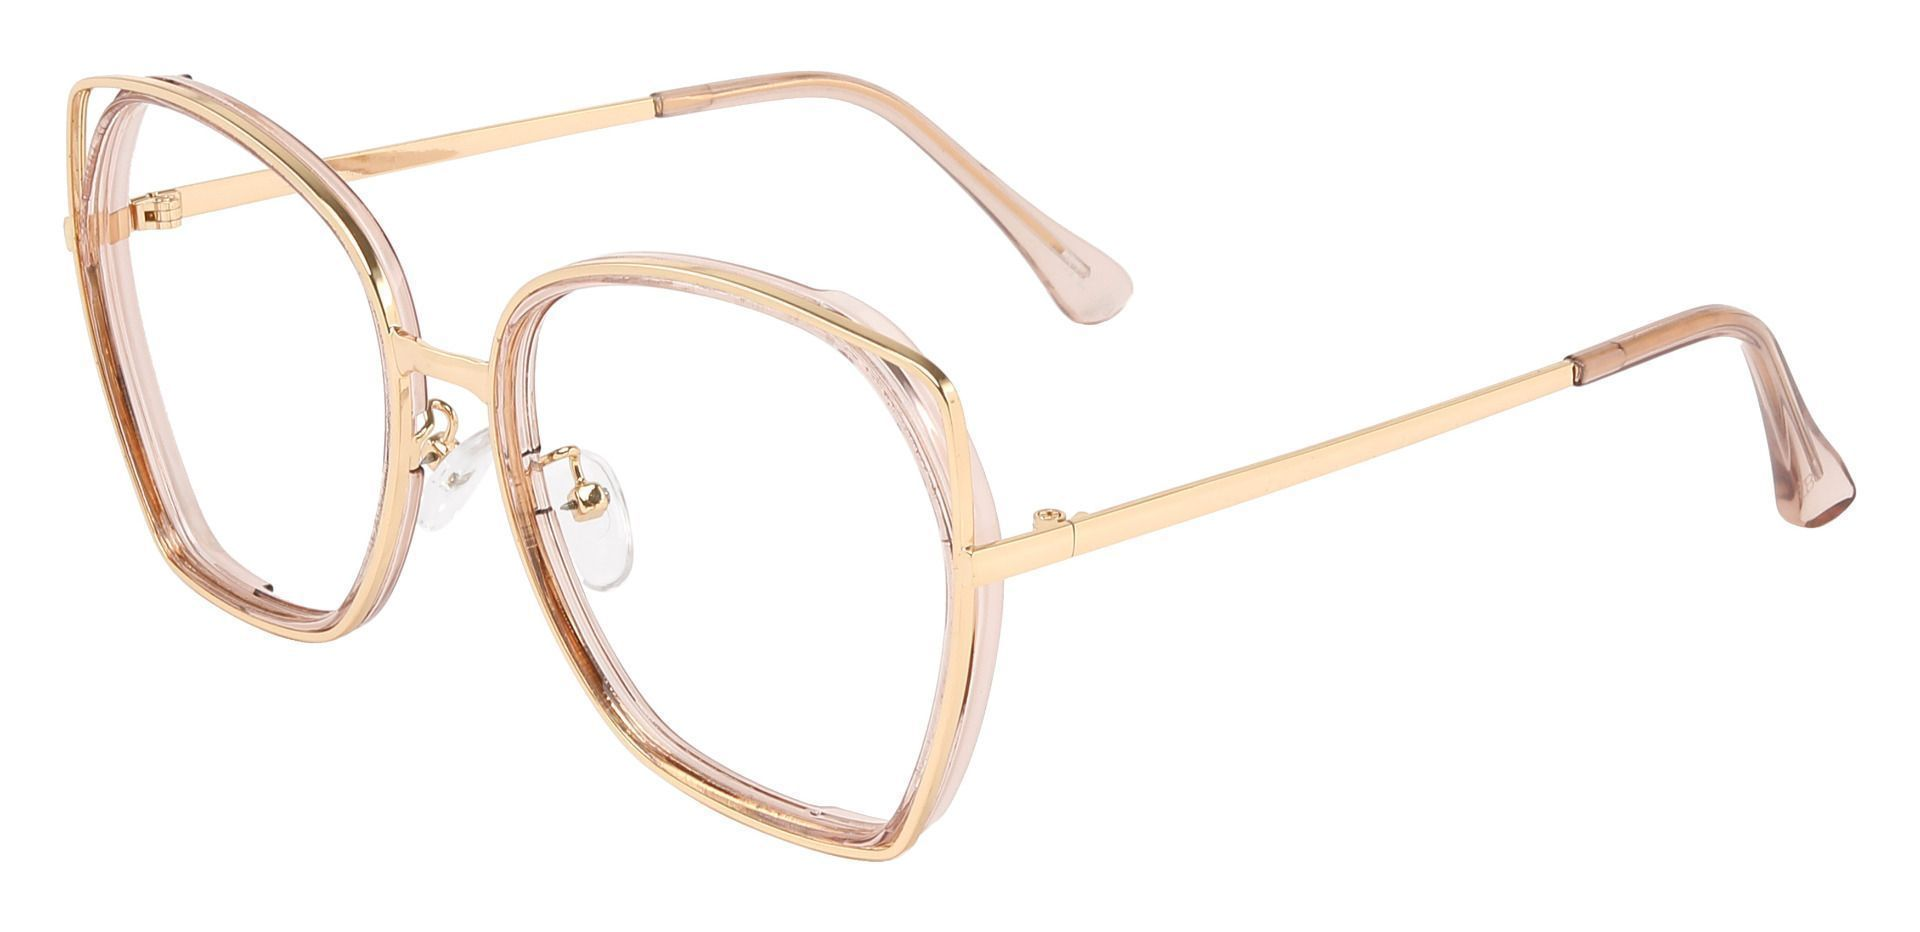 Tabby Geometric Single Vision Glasses - Pink